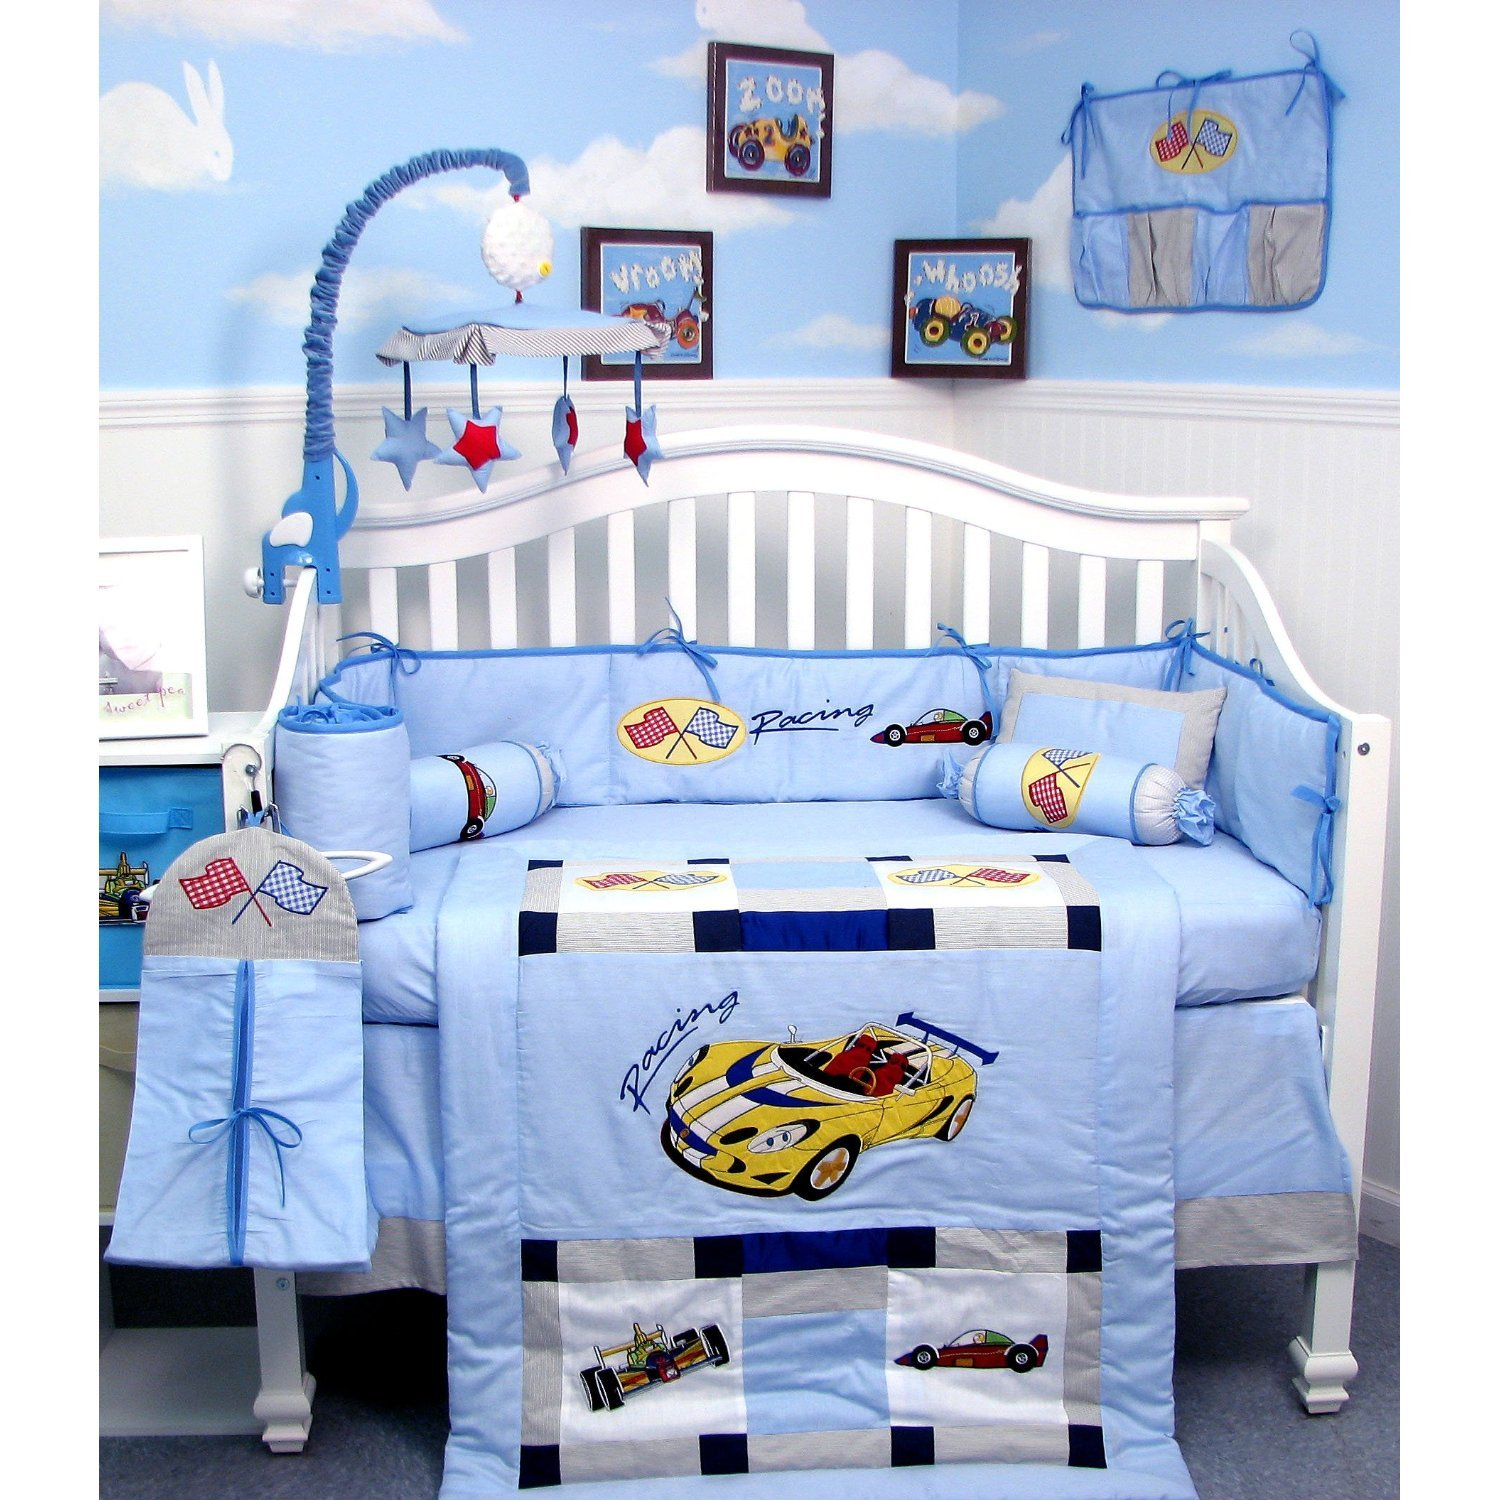 Amazon com   New Zoom Zoom Race Car Baby Crib Nursery Bedding Set 13 pcs  included Diaper Bag with Changing Pad   Bottle Case   Baby. Amazon com   New Zoom Zoom Race Car Baby Crib Nursery Bedding Set